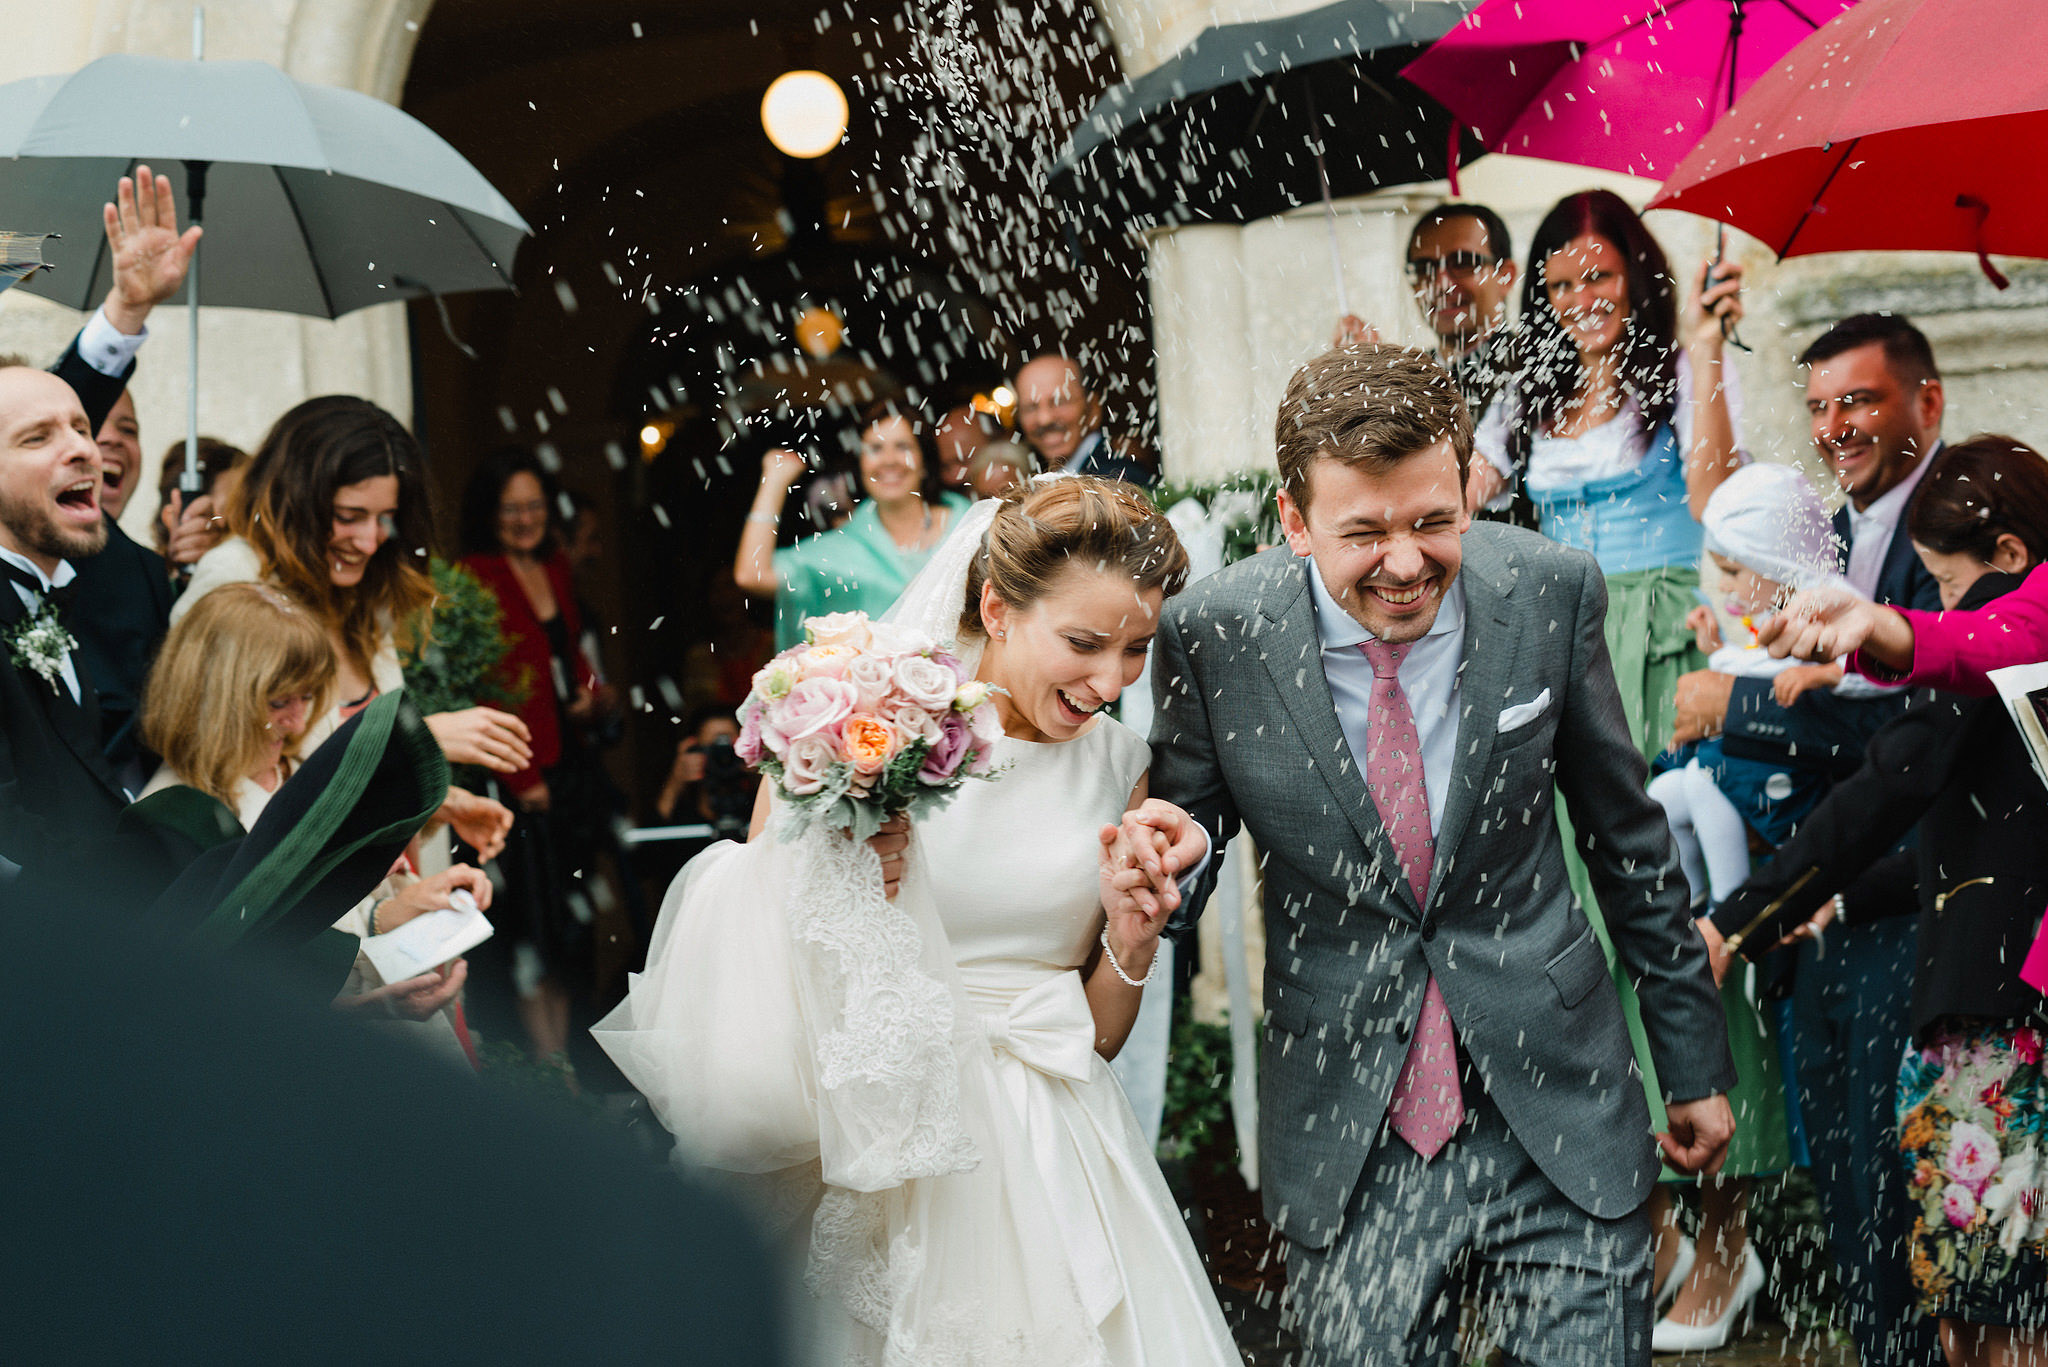 Rokolya Photography Church Exit Rice Shower Austrian Wedding Photographer Teresa Johannes